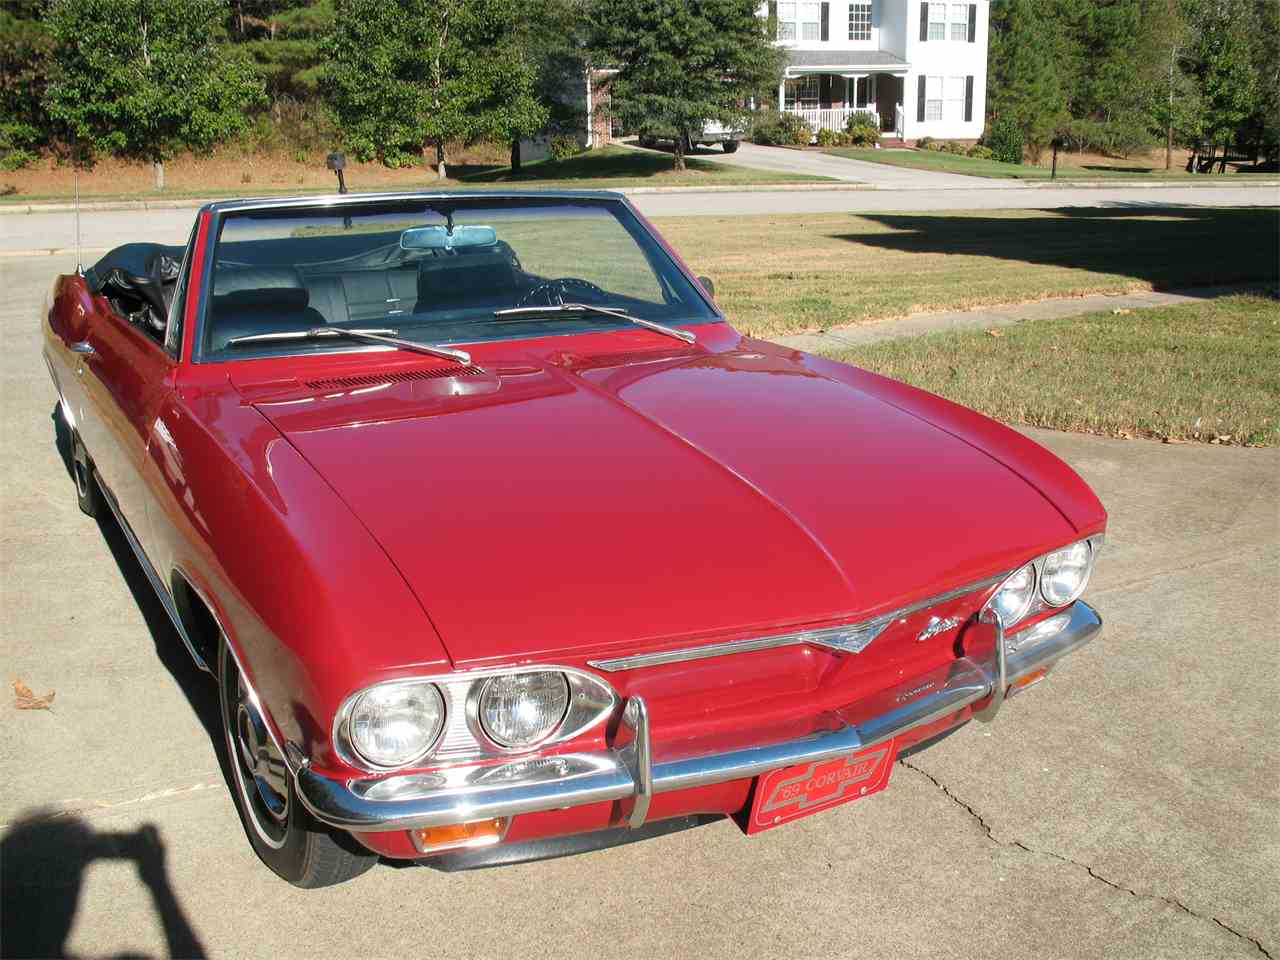 All Chevy chevy corvair monza : 1969 Chevrolet Corvair Monza for Sale | ClassicCars.com | CC-973423